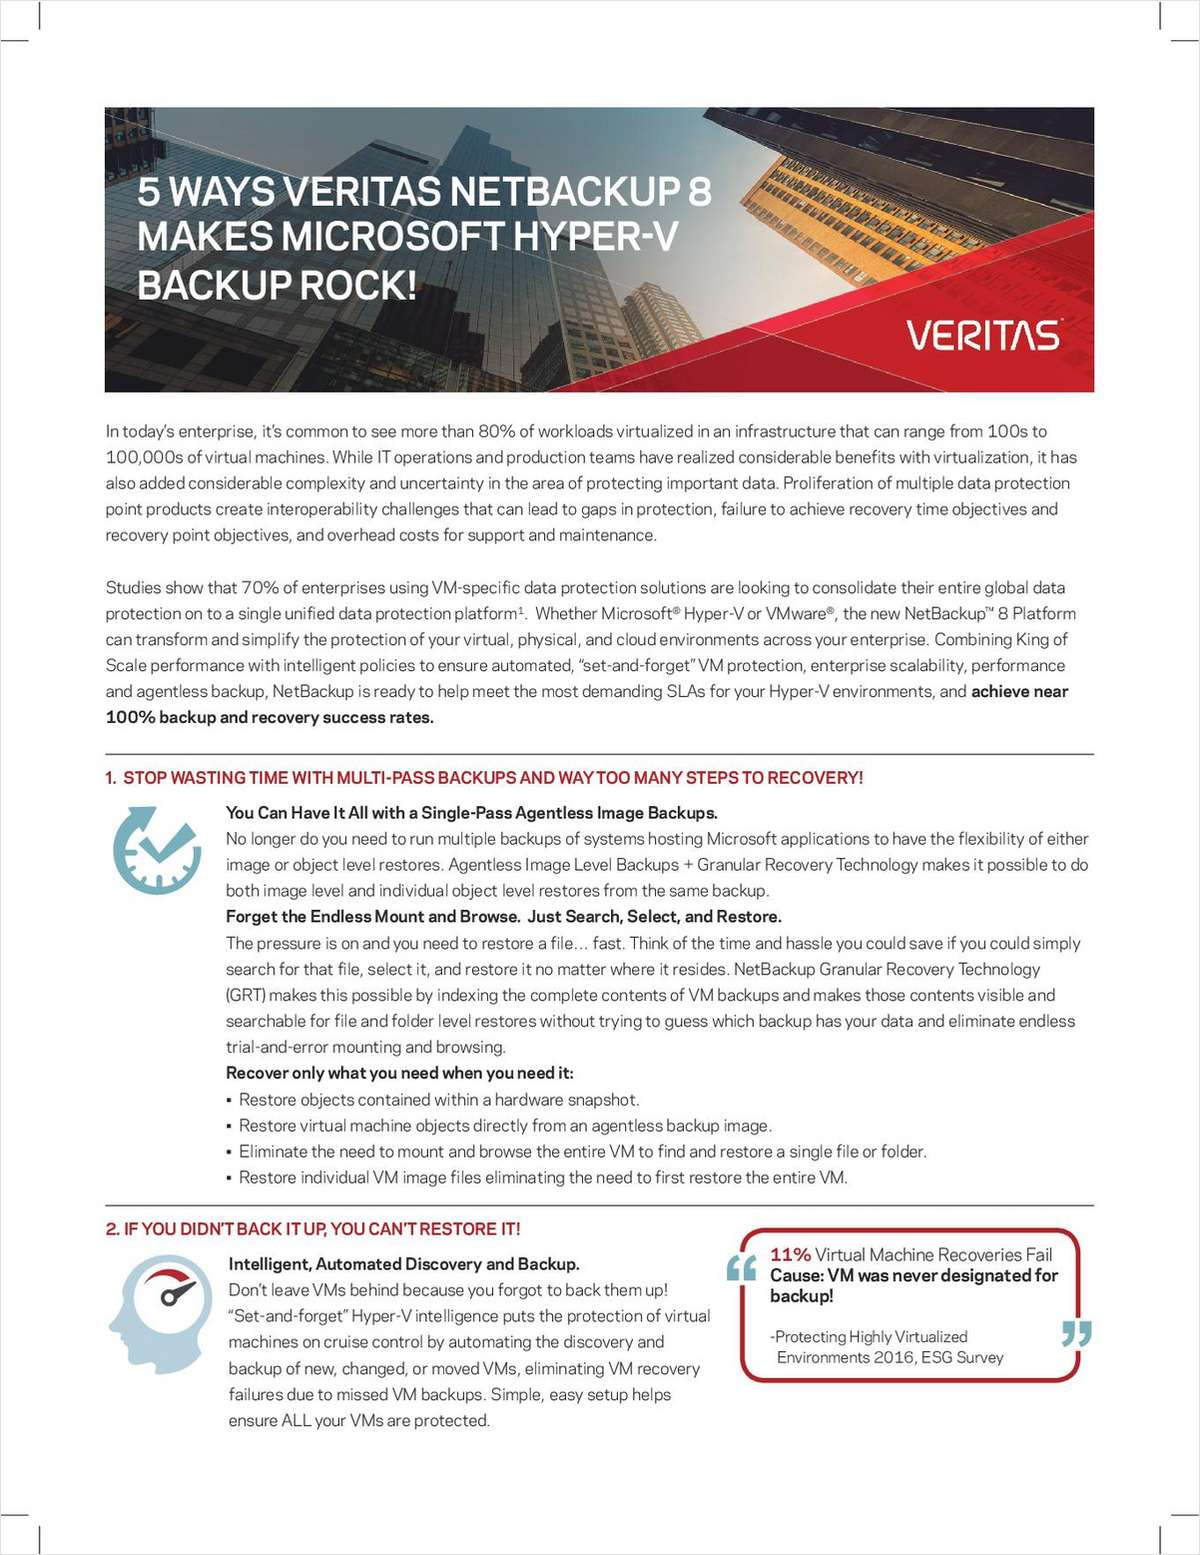 5 Ways Veritas NetBackup 8 Makes Microsoft Hyper-V Backup Rock!